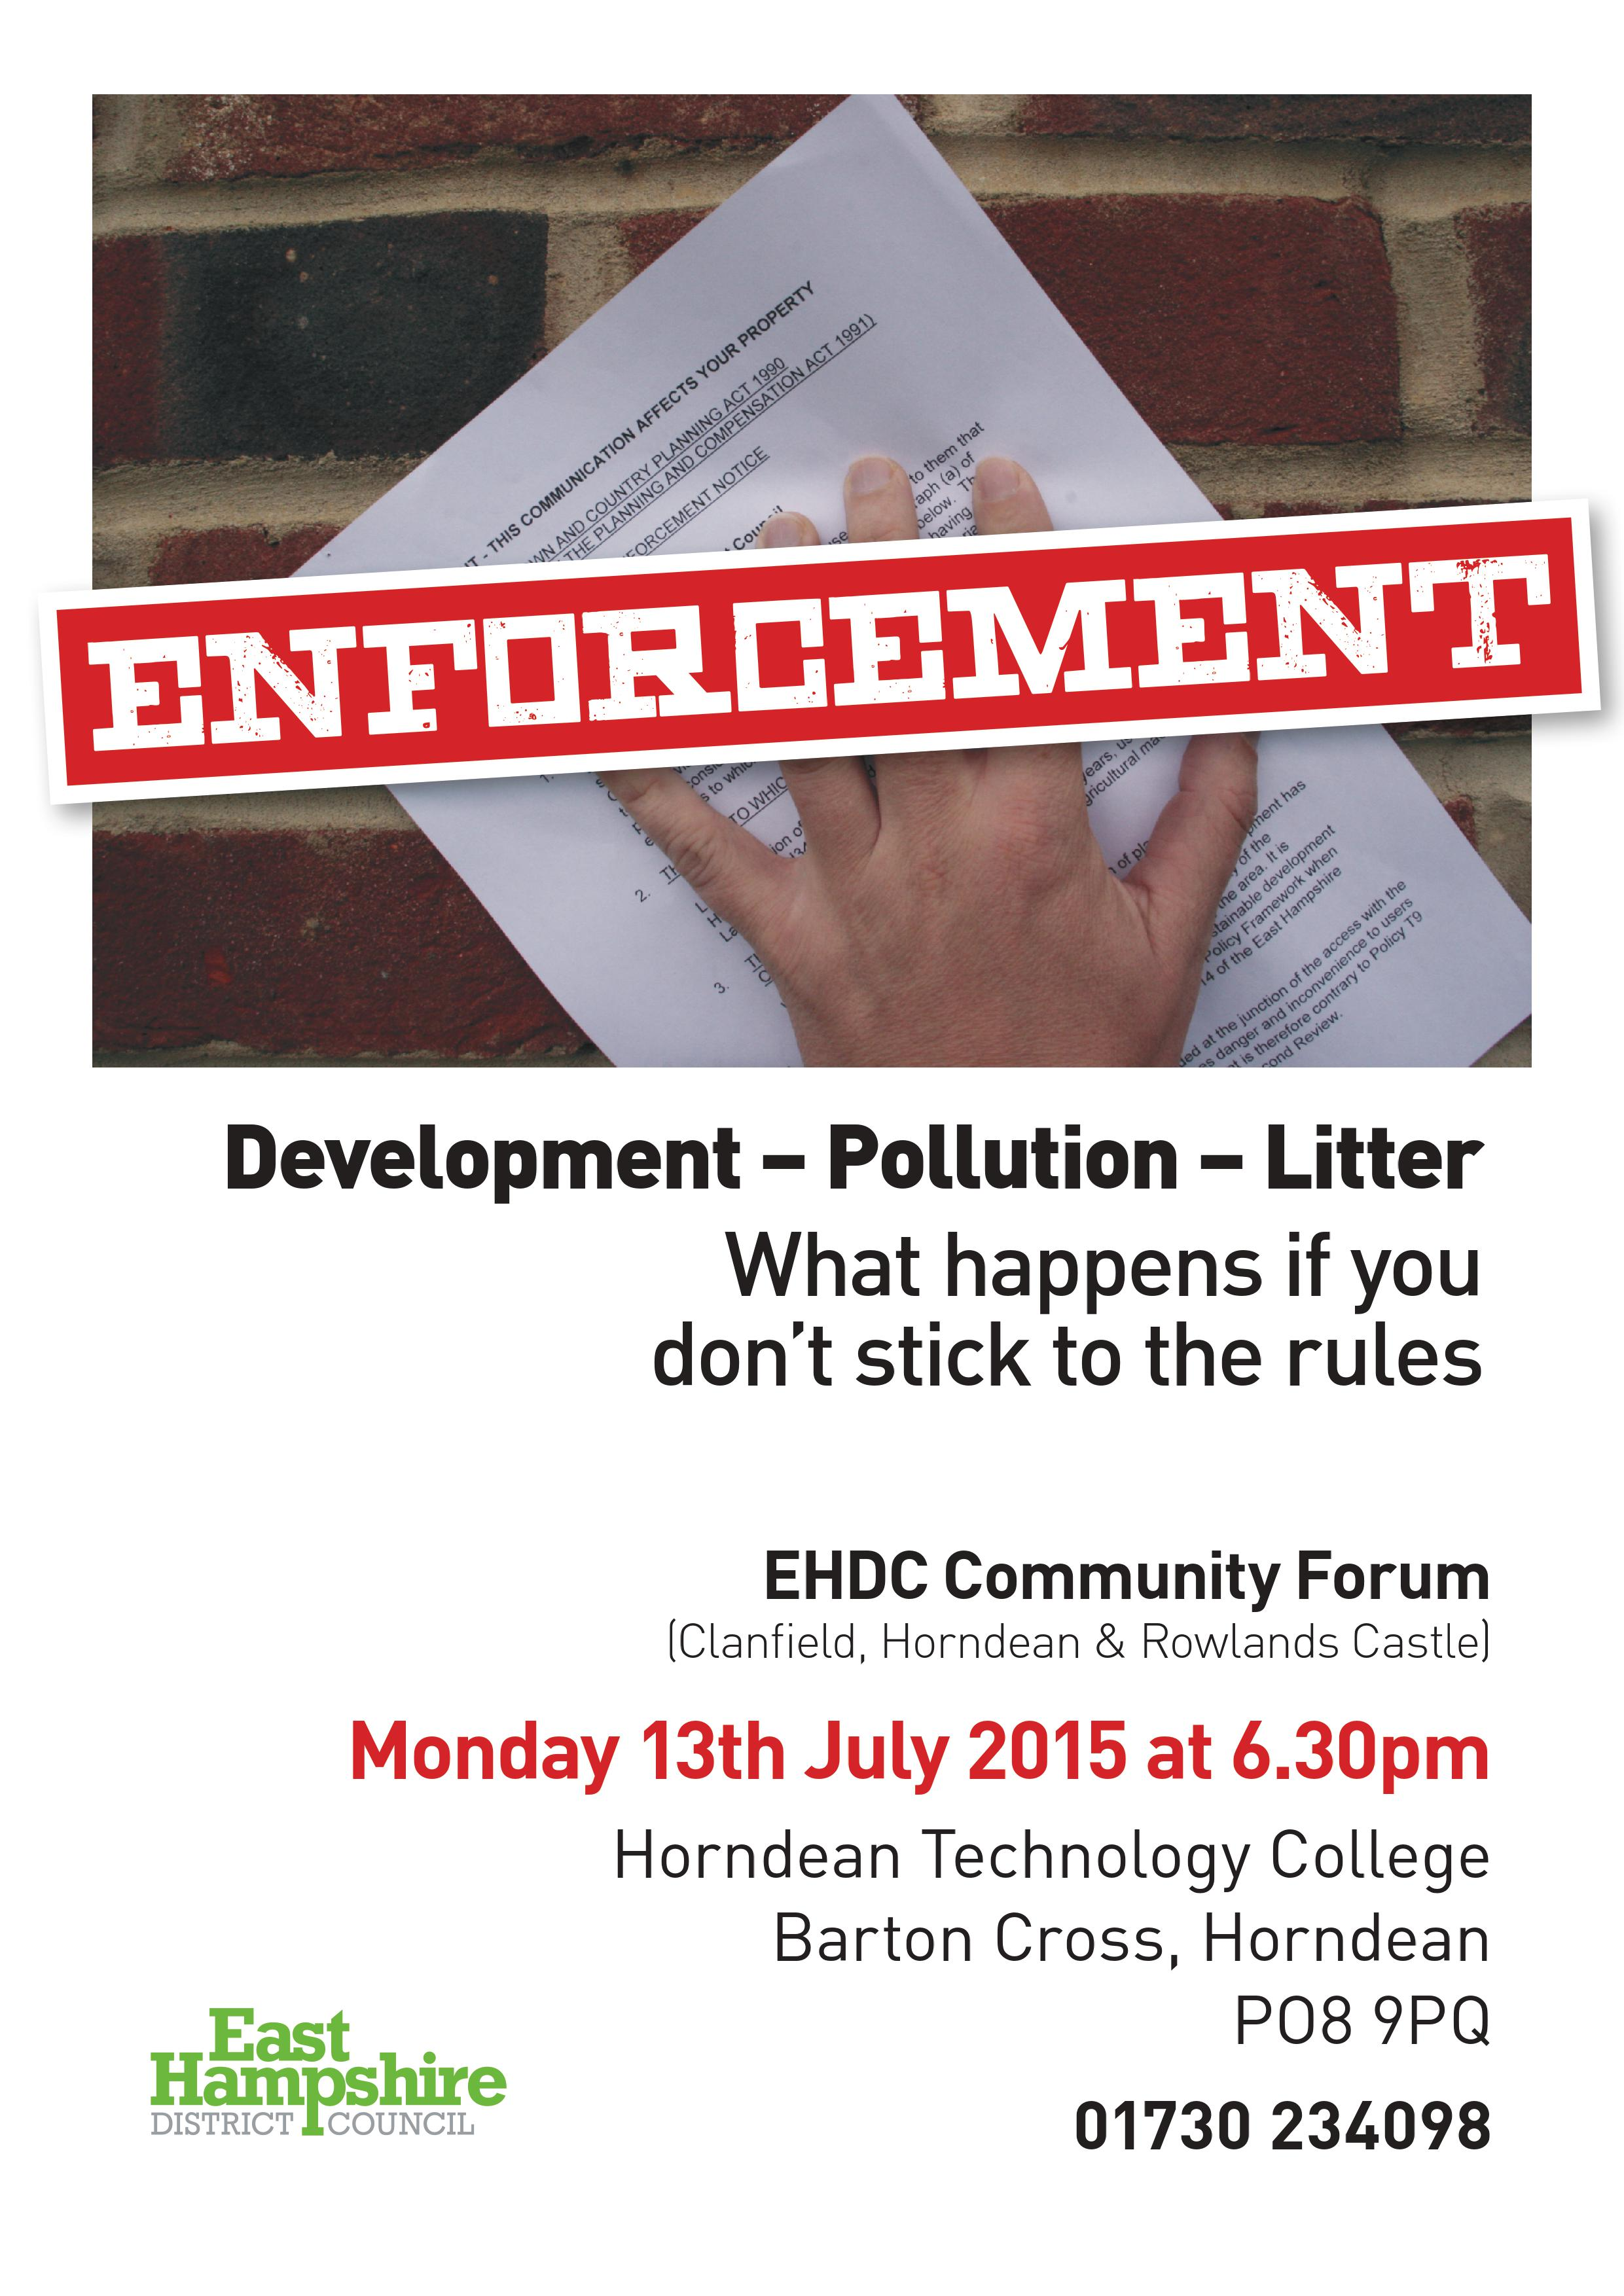 EHDC Community Forum Meeting - Enforcement Rules